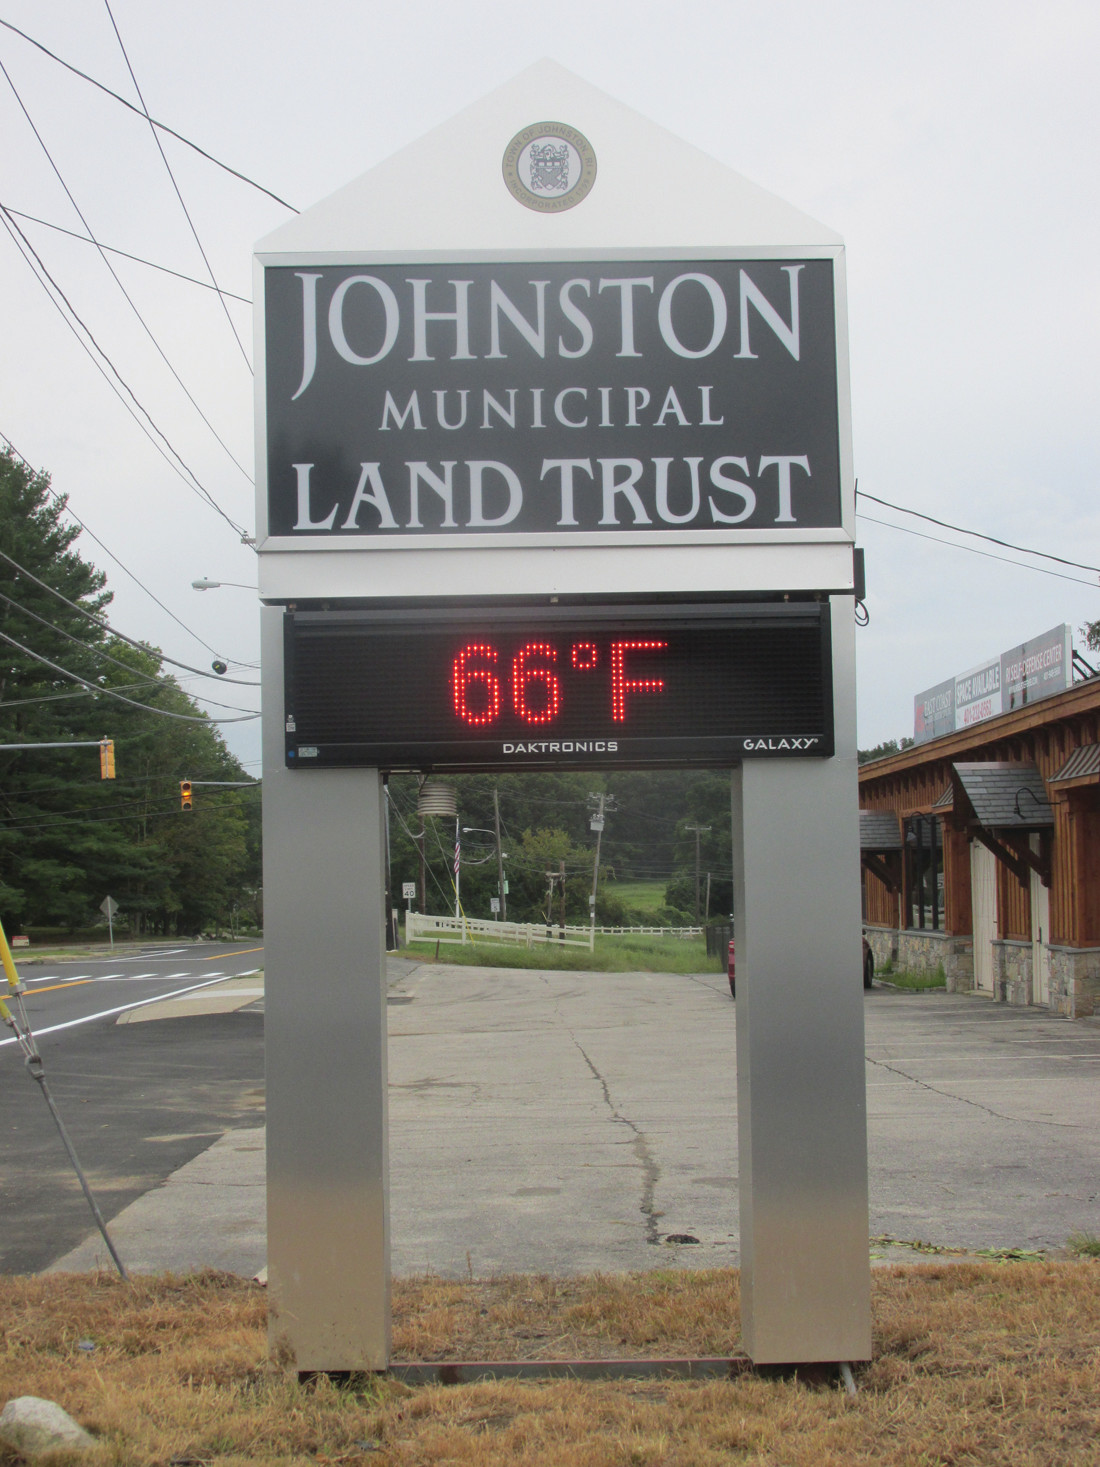 SUPER SIGN: The new Johnston Land Trust, which is located inside the old Belknap School on Greenville Avenue, even has a special sign and message board that can be use for various meetings housed in the refurbished 125-year-old structure.